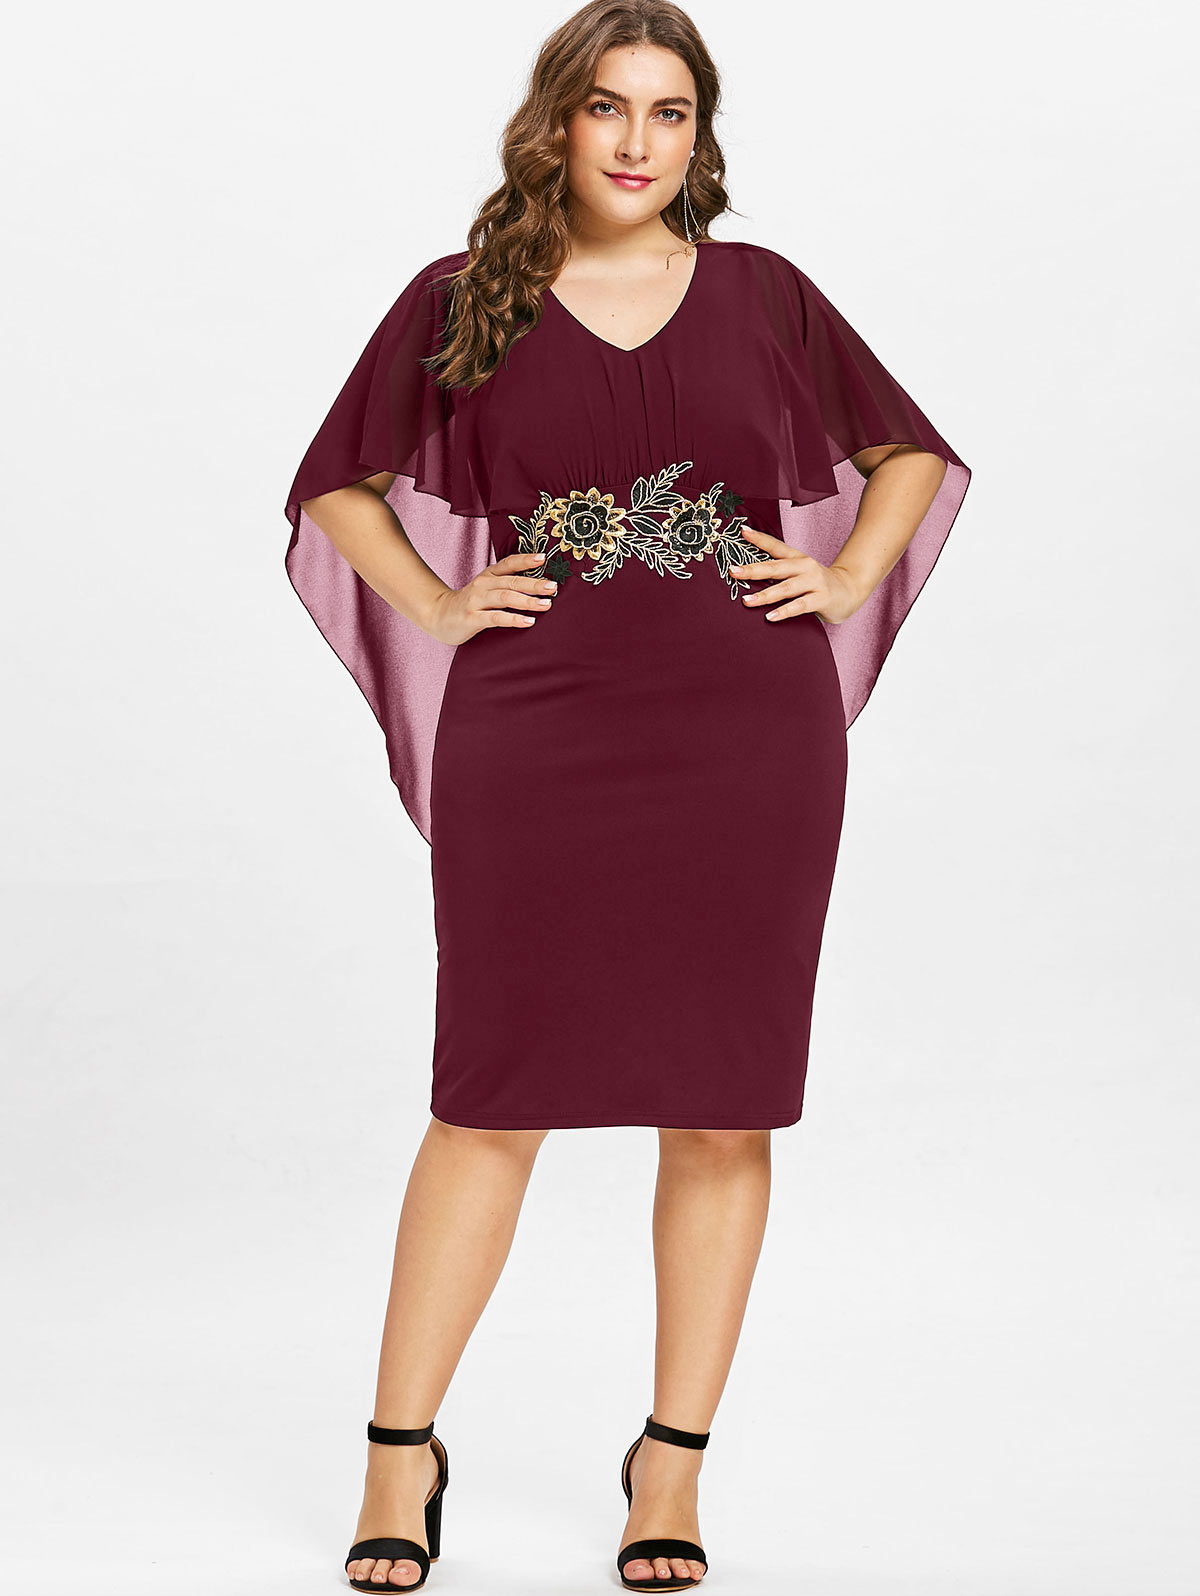 omgAmazon Half Sleeves Plus size Sheath Dress for Party Evening